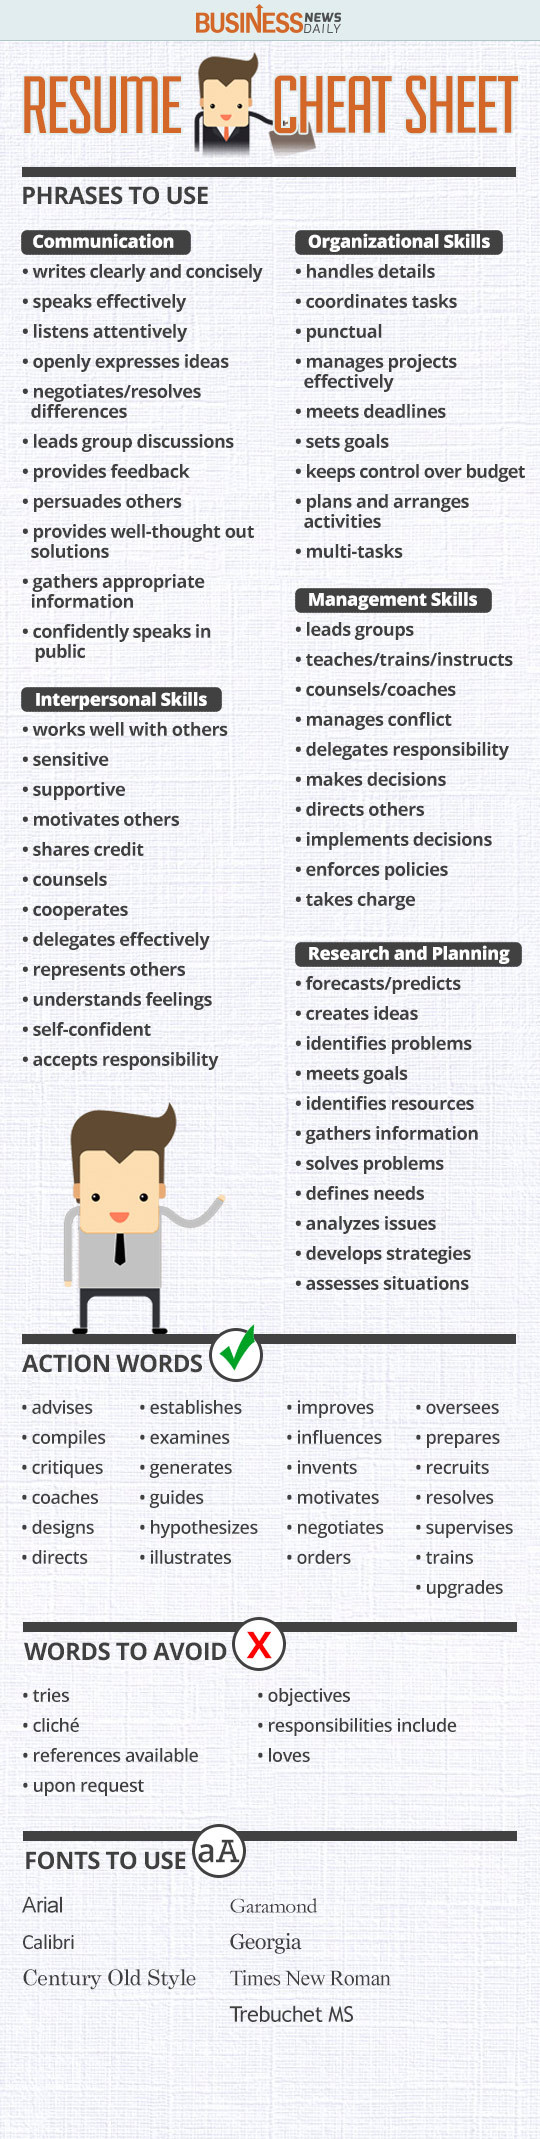 Your Resume Cheat Sheet Writing Guide Business News Daily